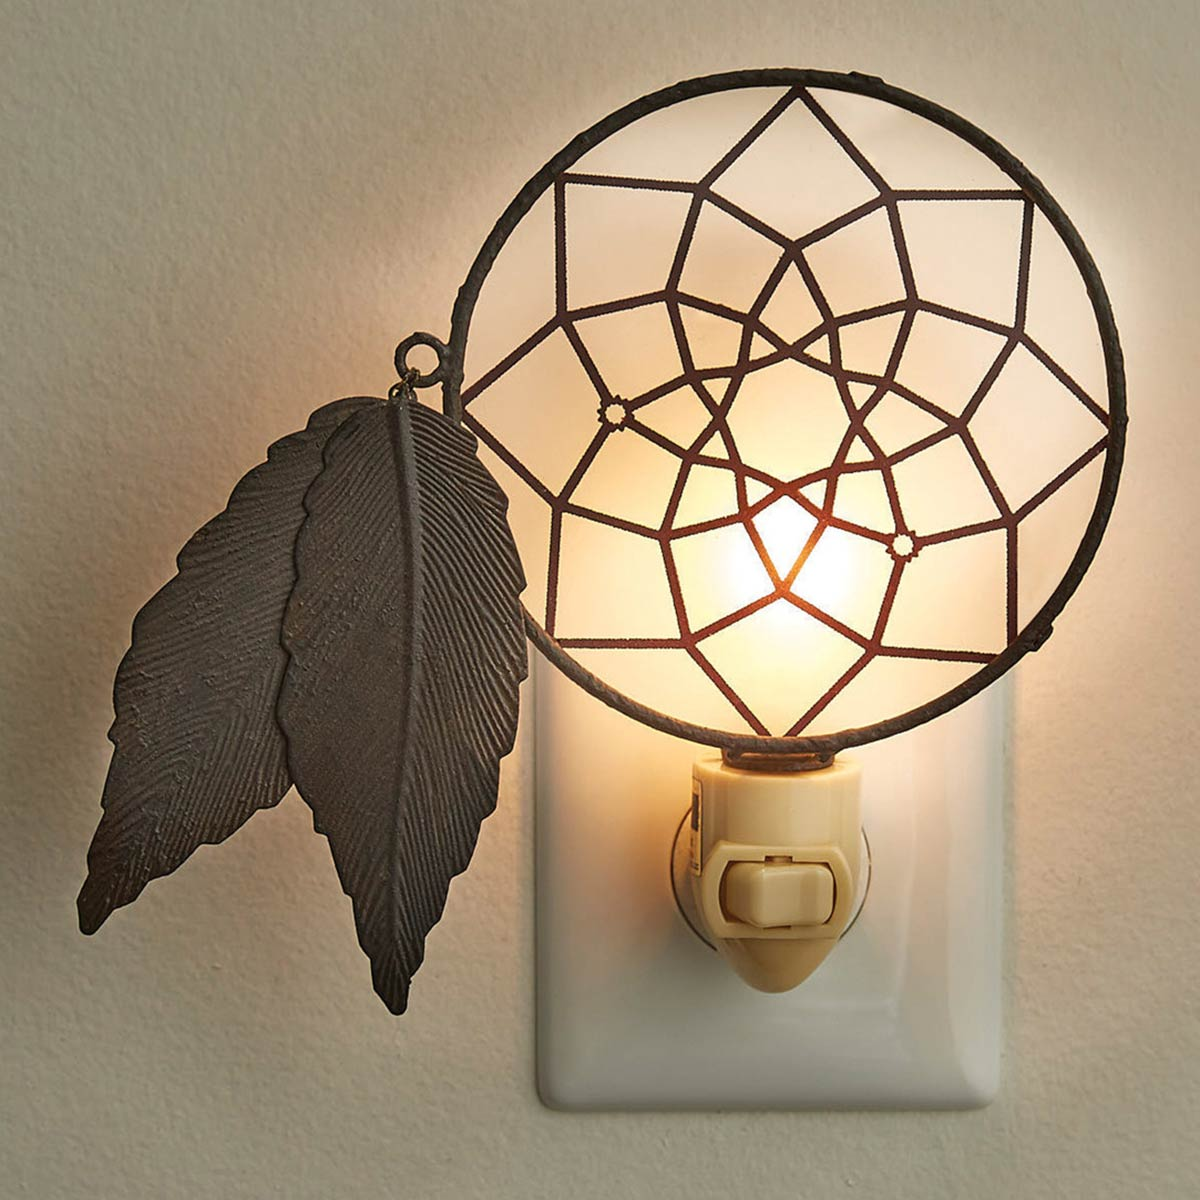 Dreamcatcher Nightlight